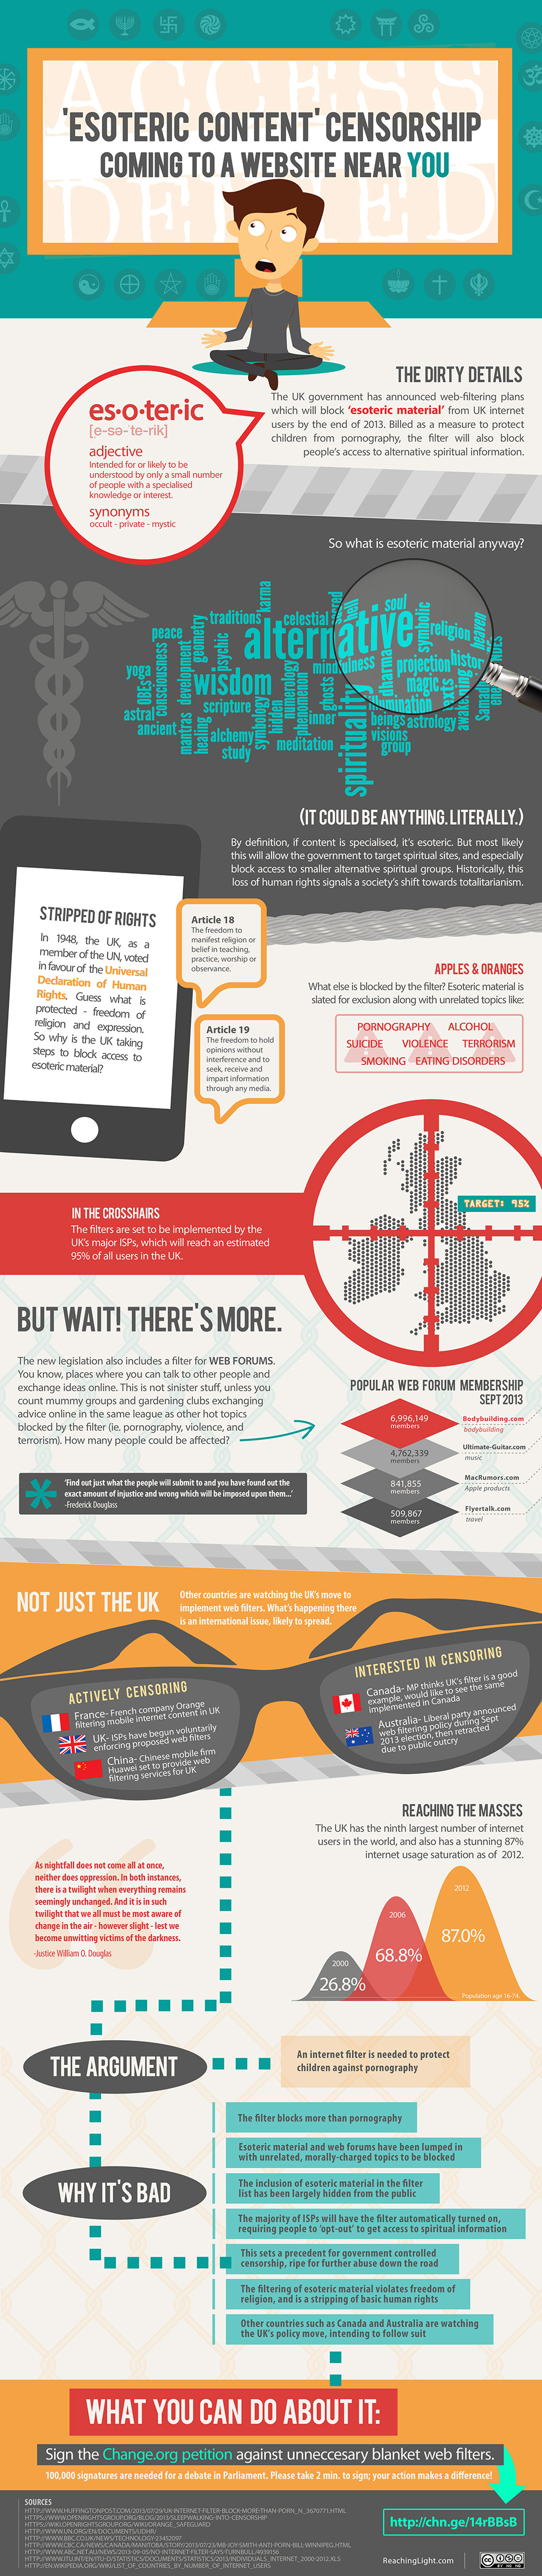 """UK Filter to Block """"Esoteric Content"""" — Worldwide Implications UK_Esoteric_Filter_Infographic2"""